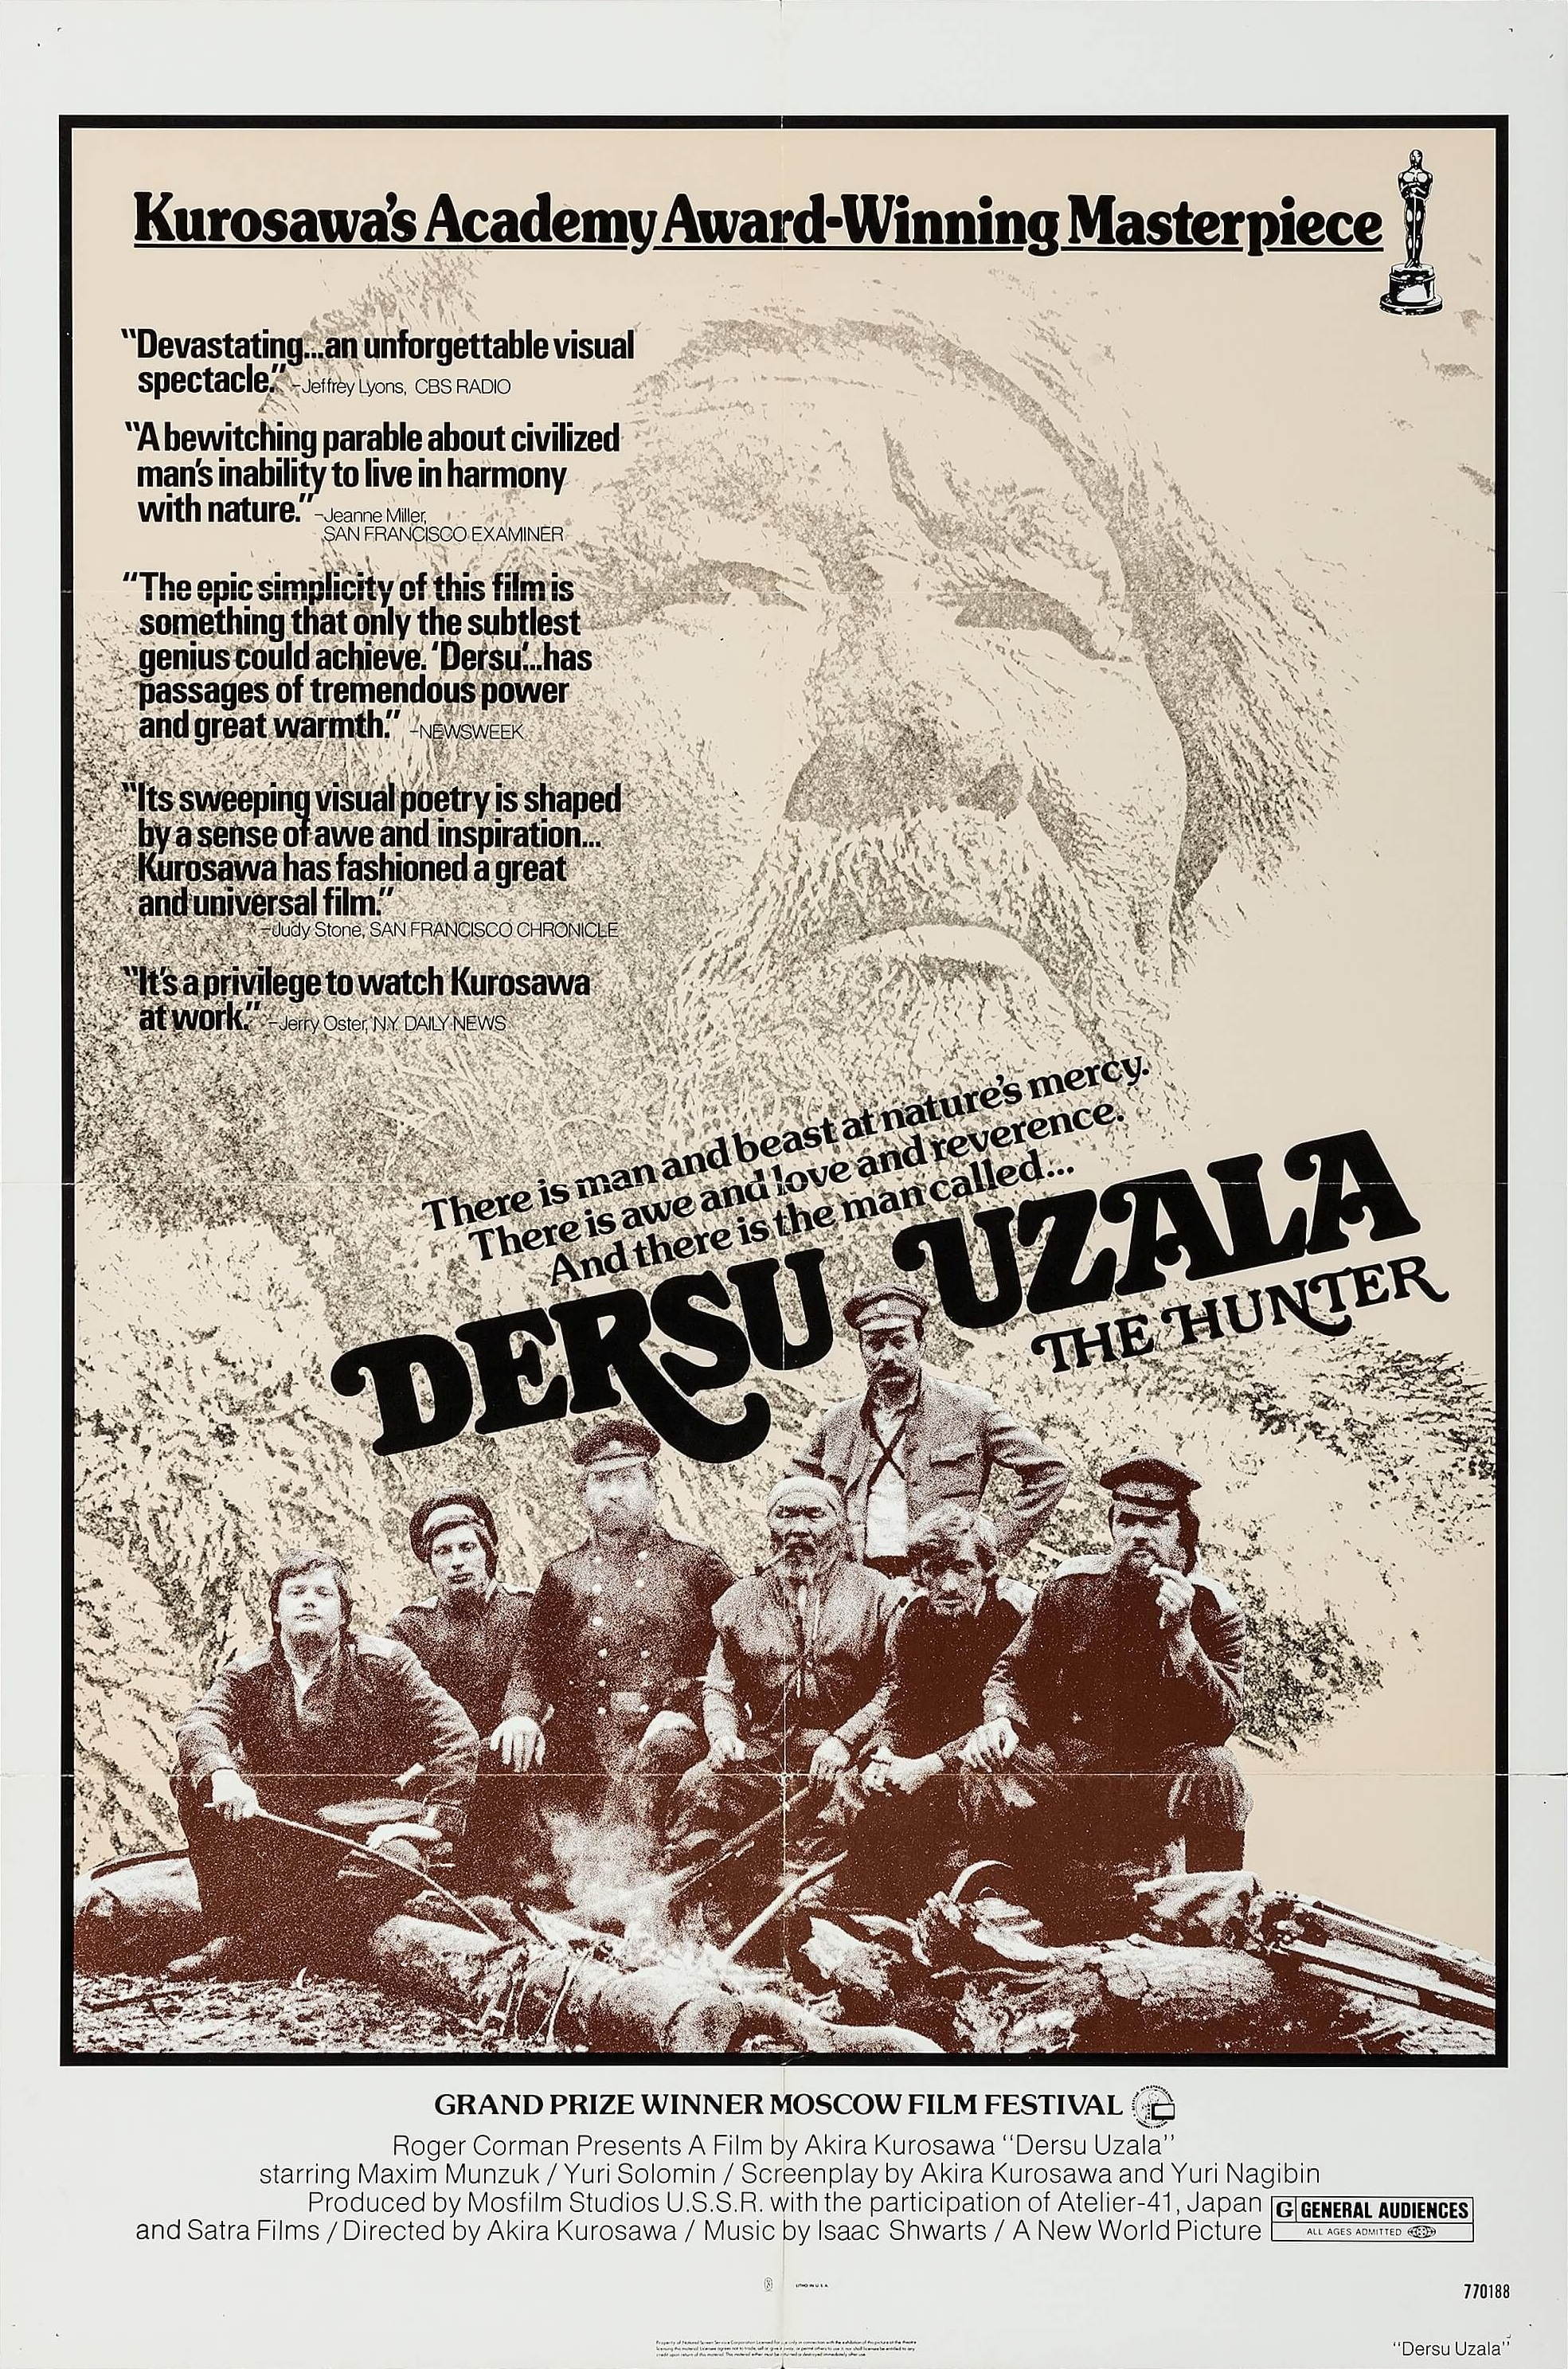 the pearl, derzu uzala, and the old man and the sea essay No country for old men essay  the true story of vladimir klavdievich arseniev's encounter with the goldi trapper derzu uzala  the old man and the sea is.